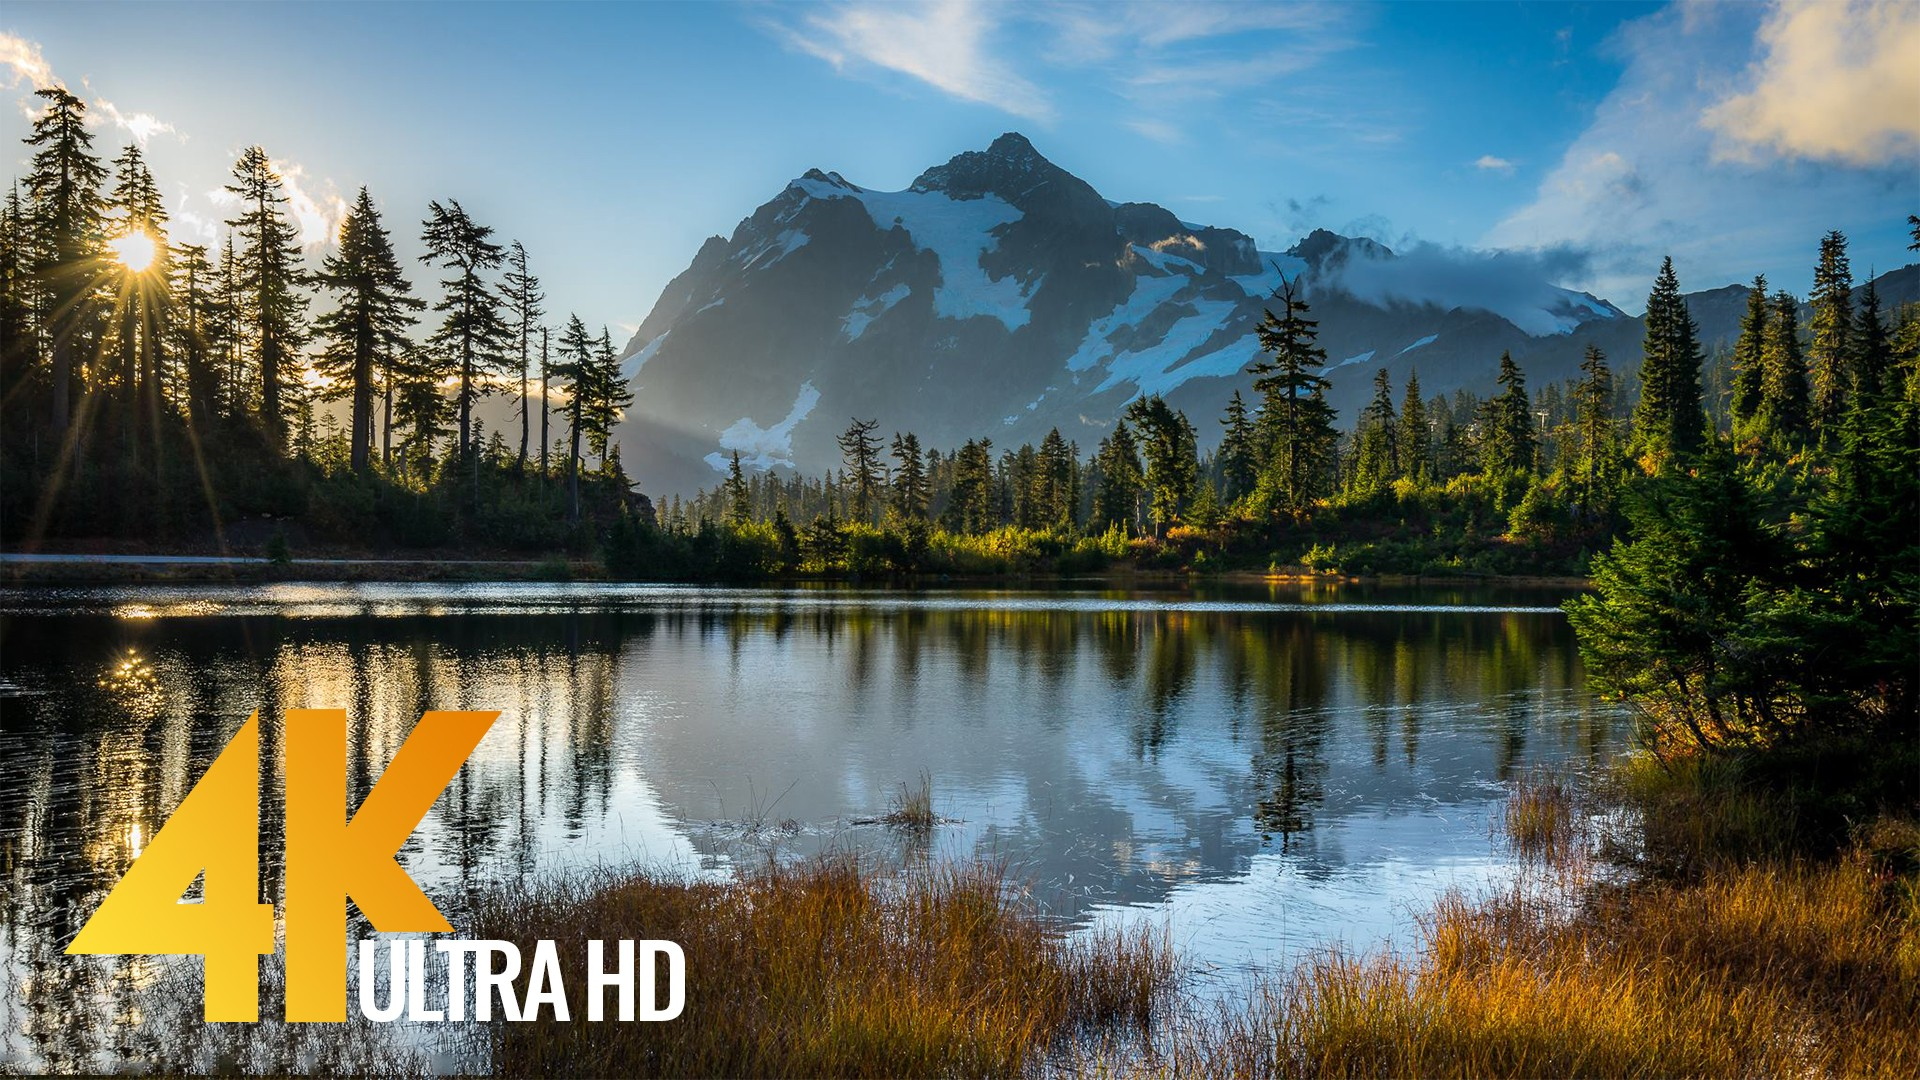 8 Hours of Birds Singing on the Lakeshore and Water Sounds – Relaxing Nature Sounds – Mount Shuksan